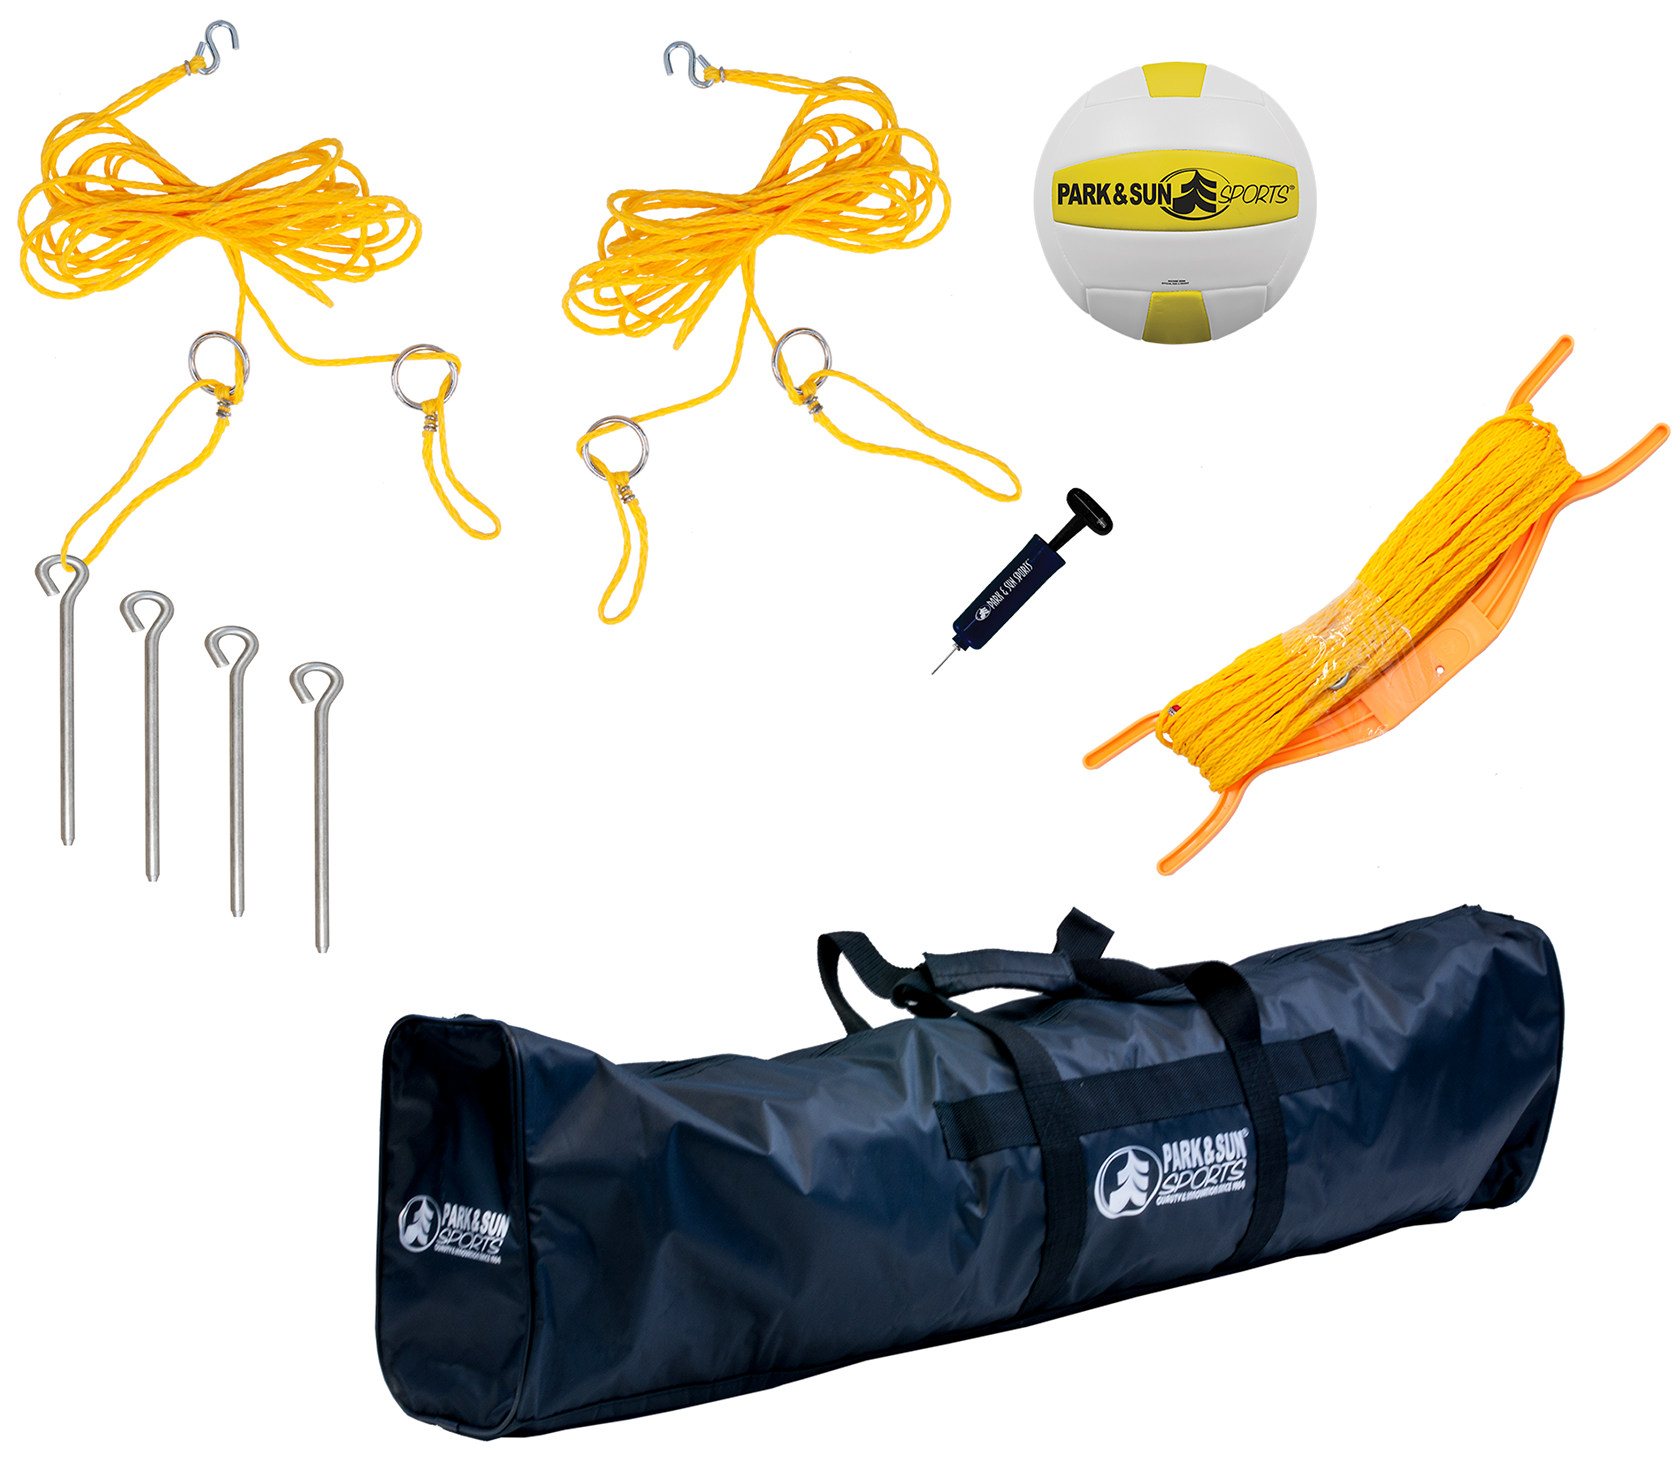 Park and Sports Tournament FLEX Volleyball Set Accessories